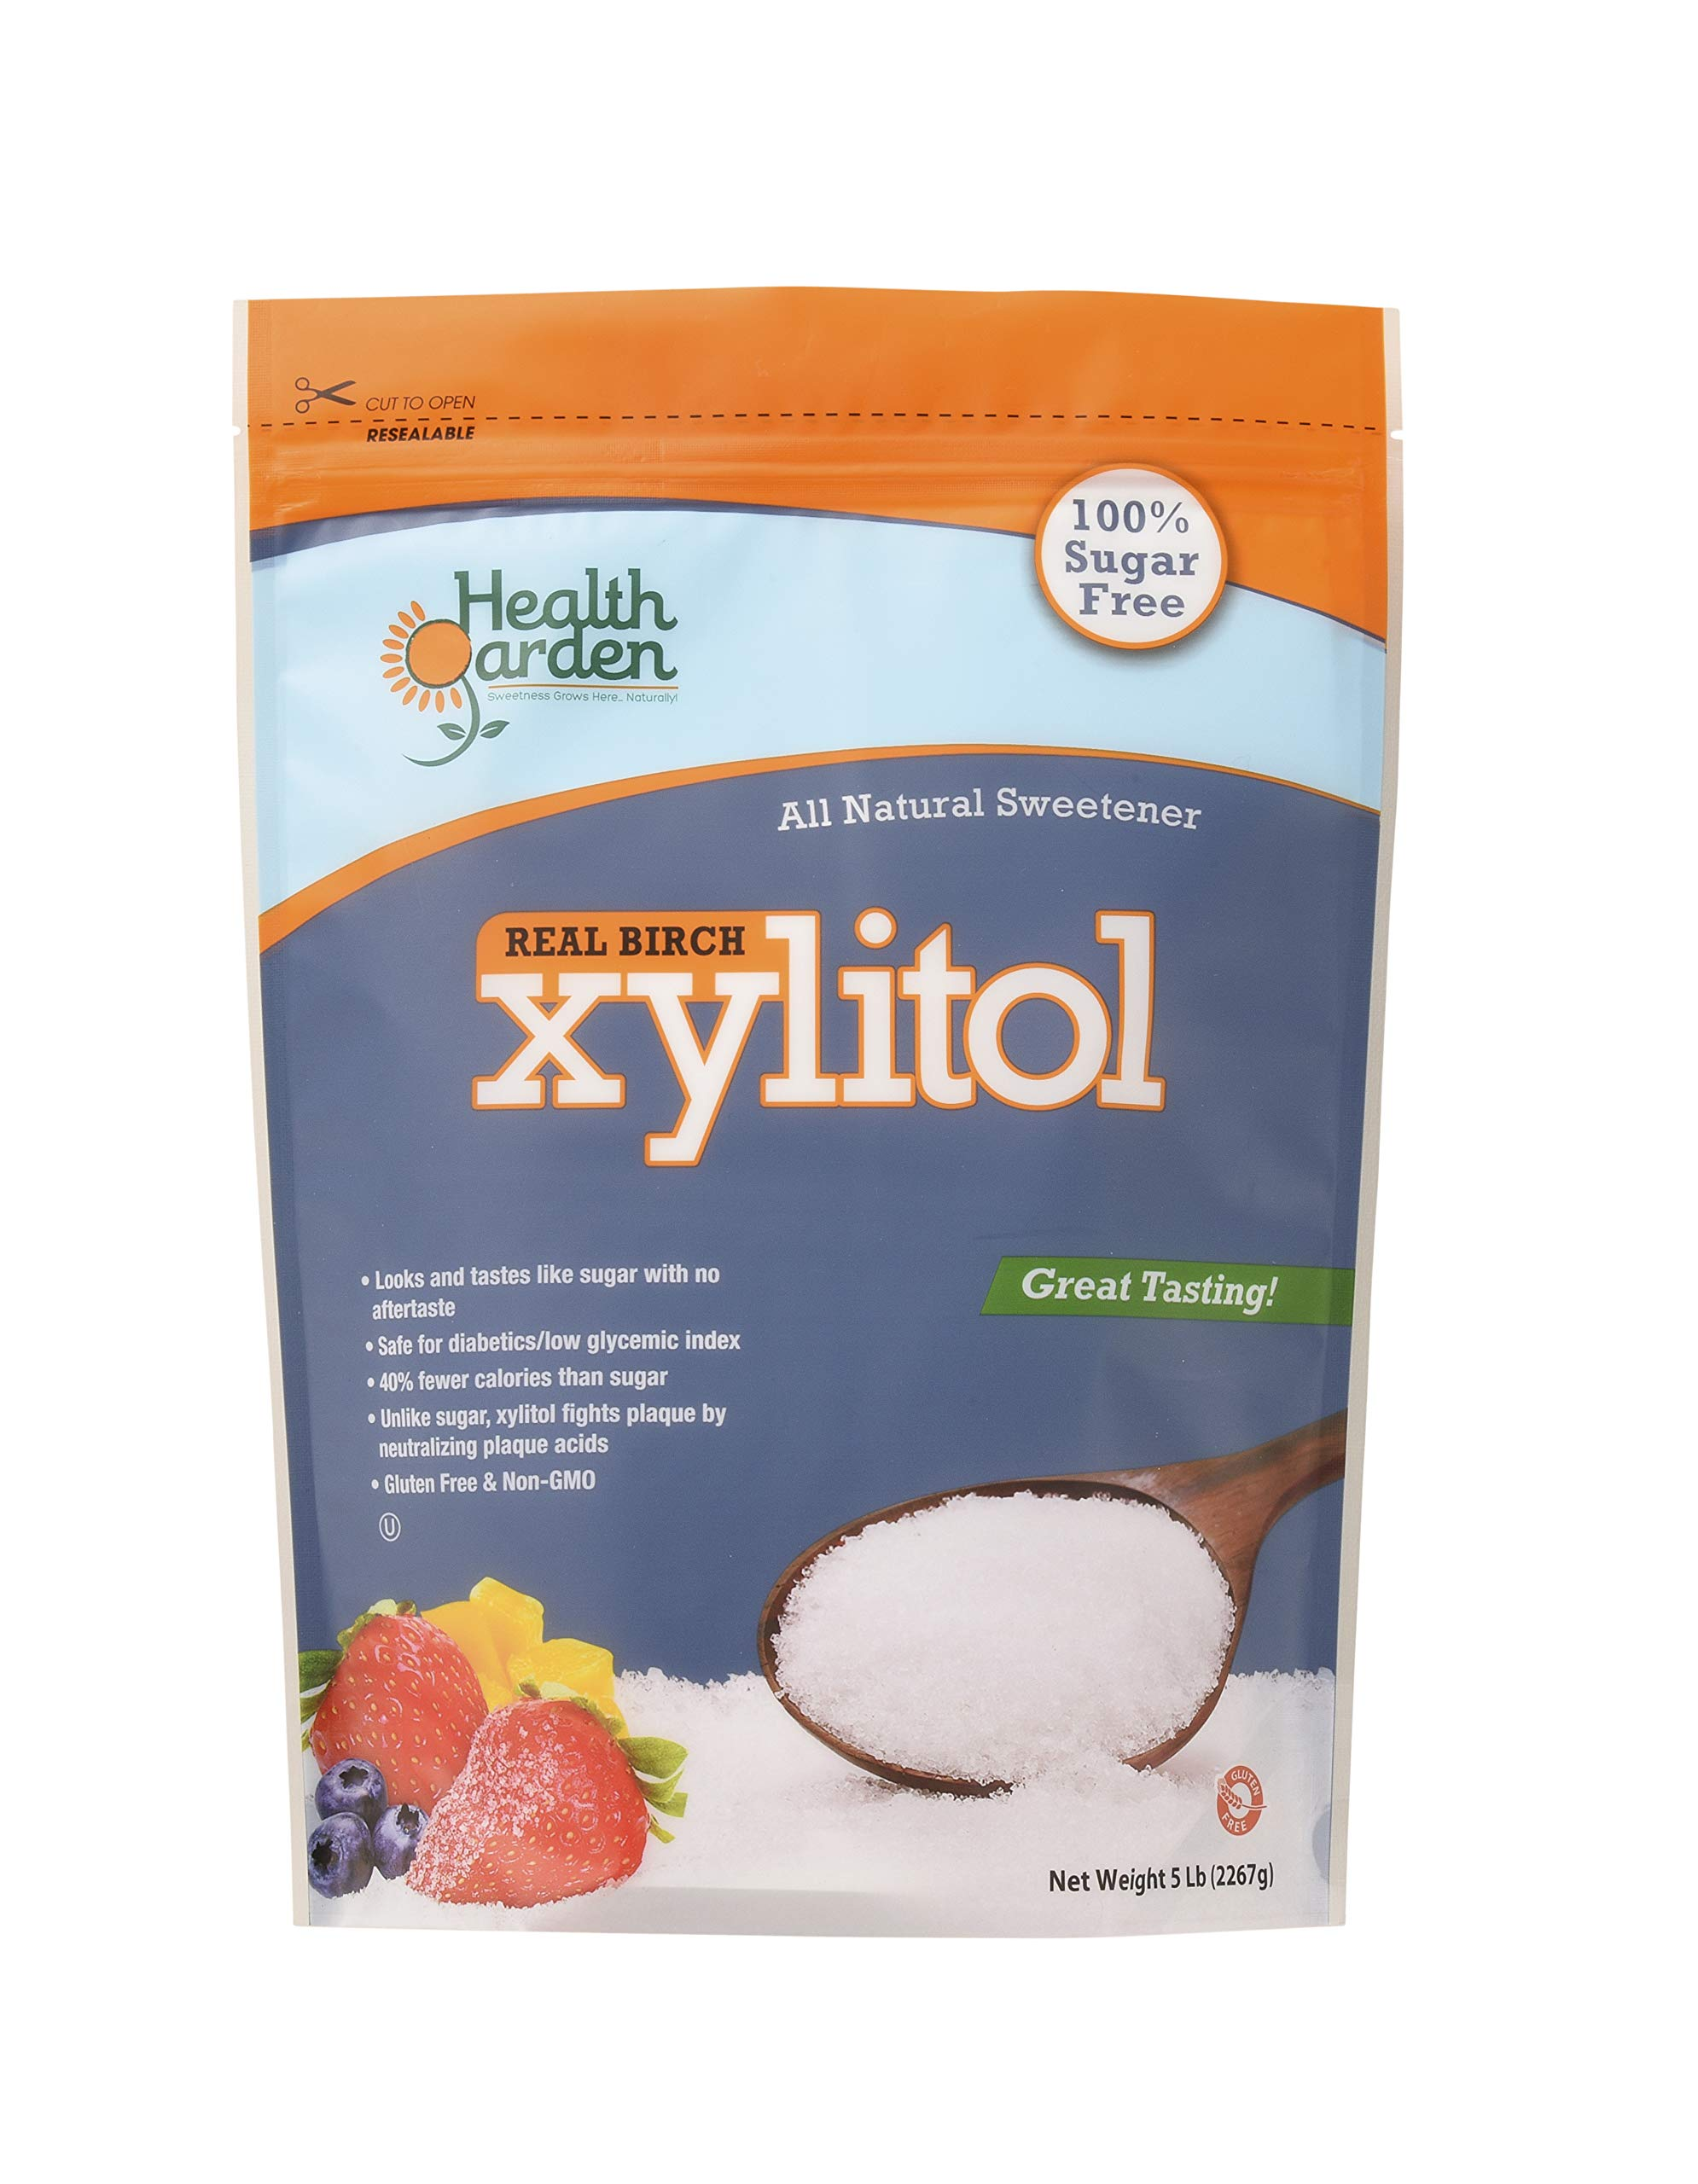 Health Garden Birch Xylitol Sugar Free Sweetener, All Natural, Non GMO (Not from Corn) 30 LB by HEALTH GARDEN